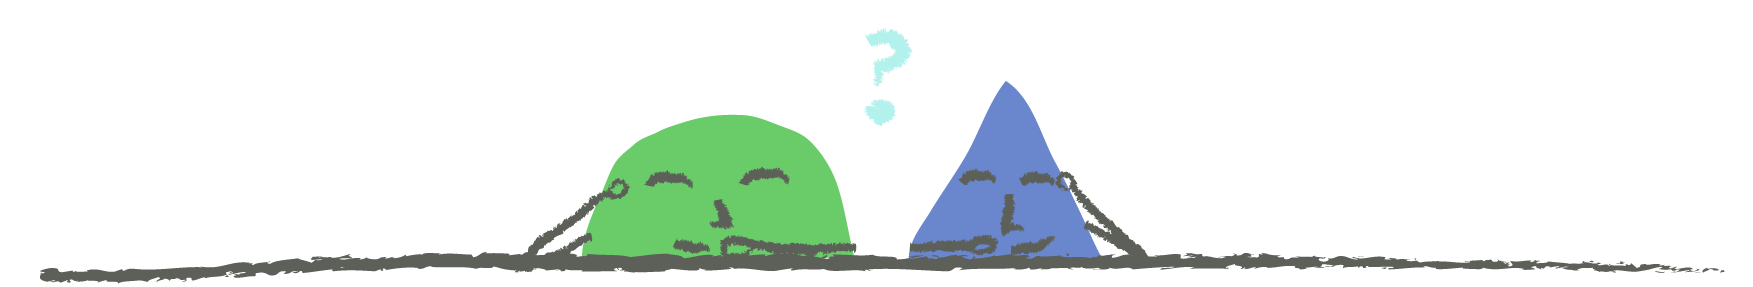 questions-04-04.png